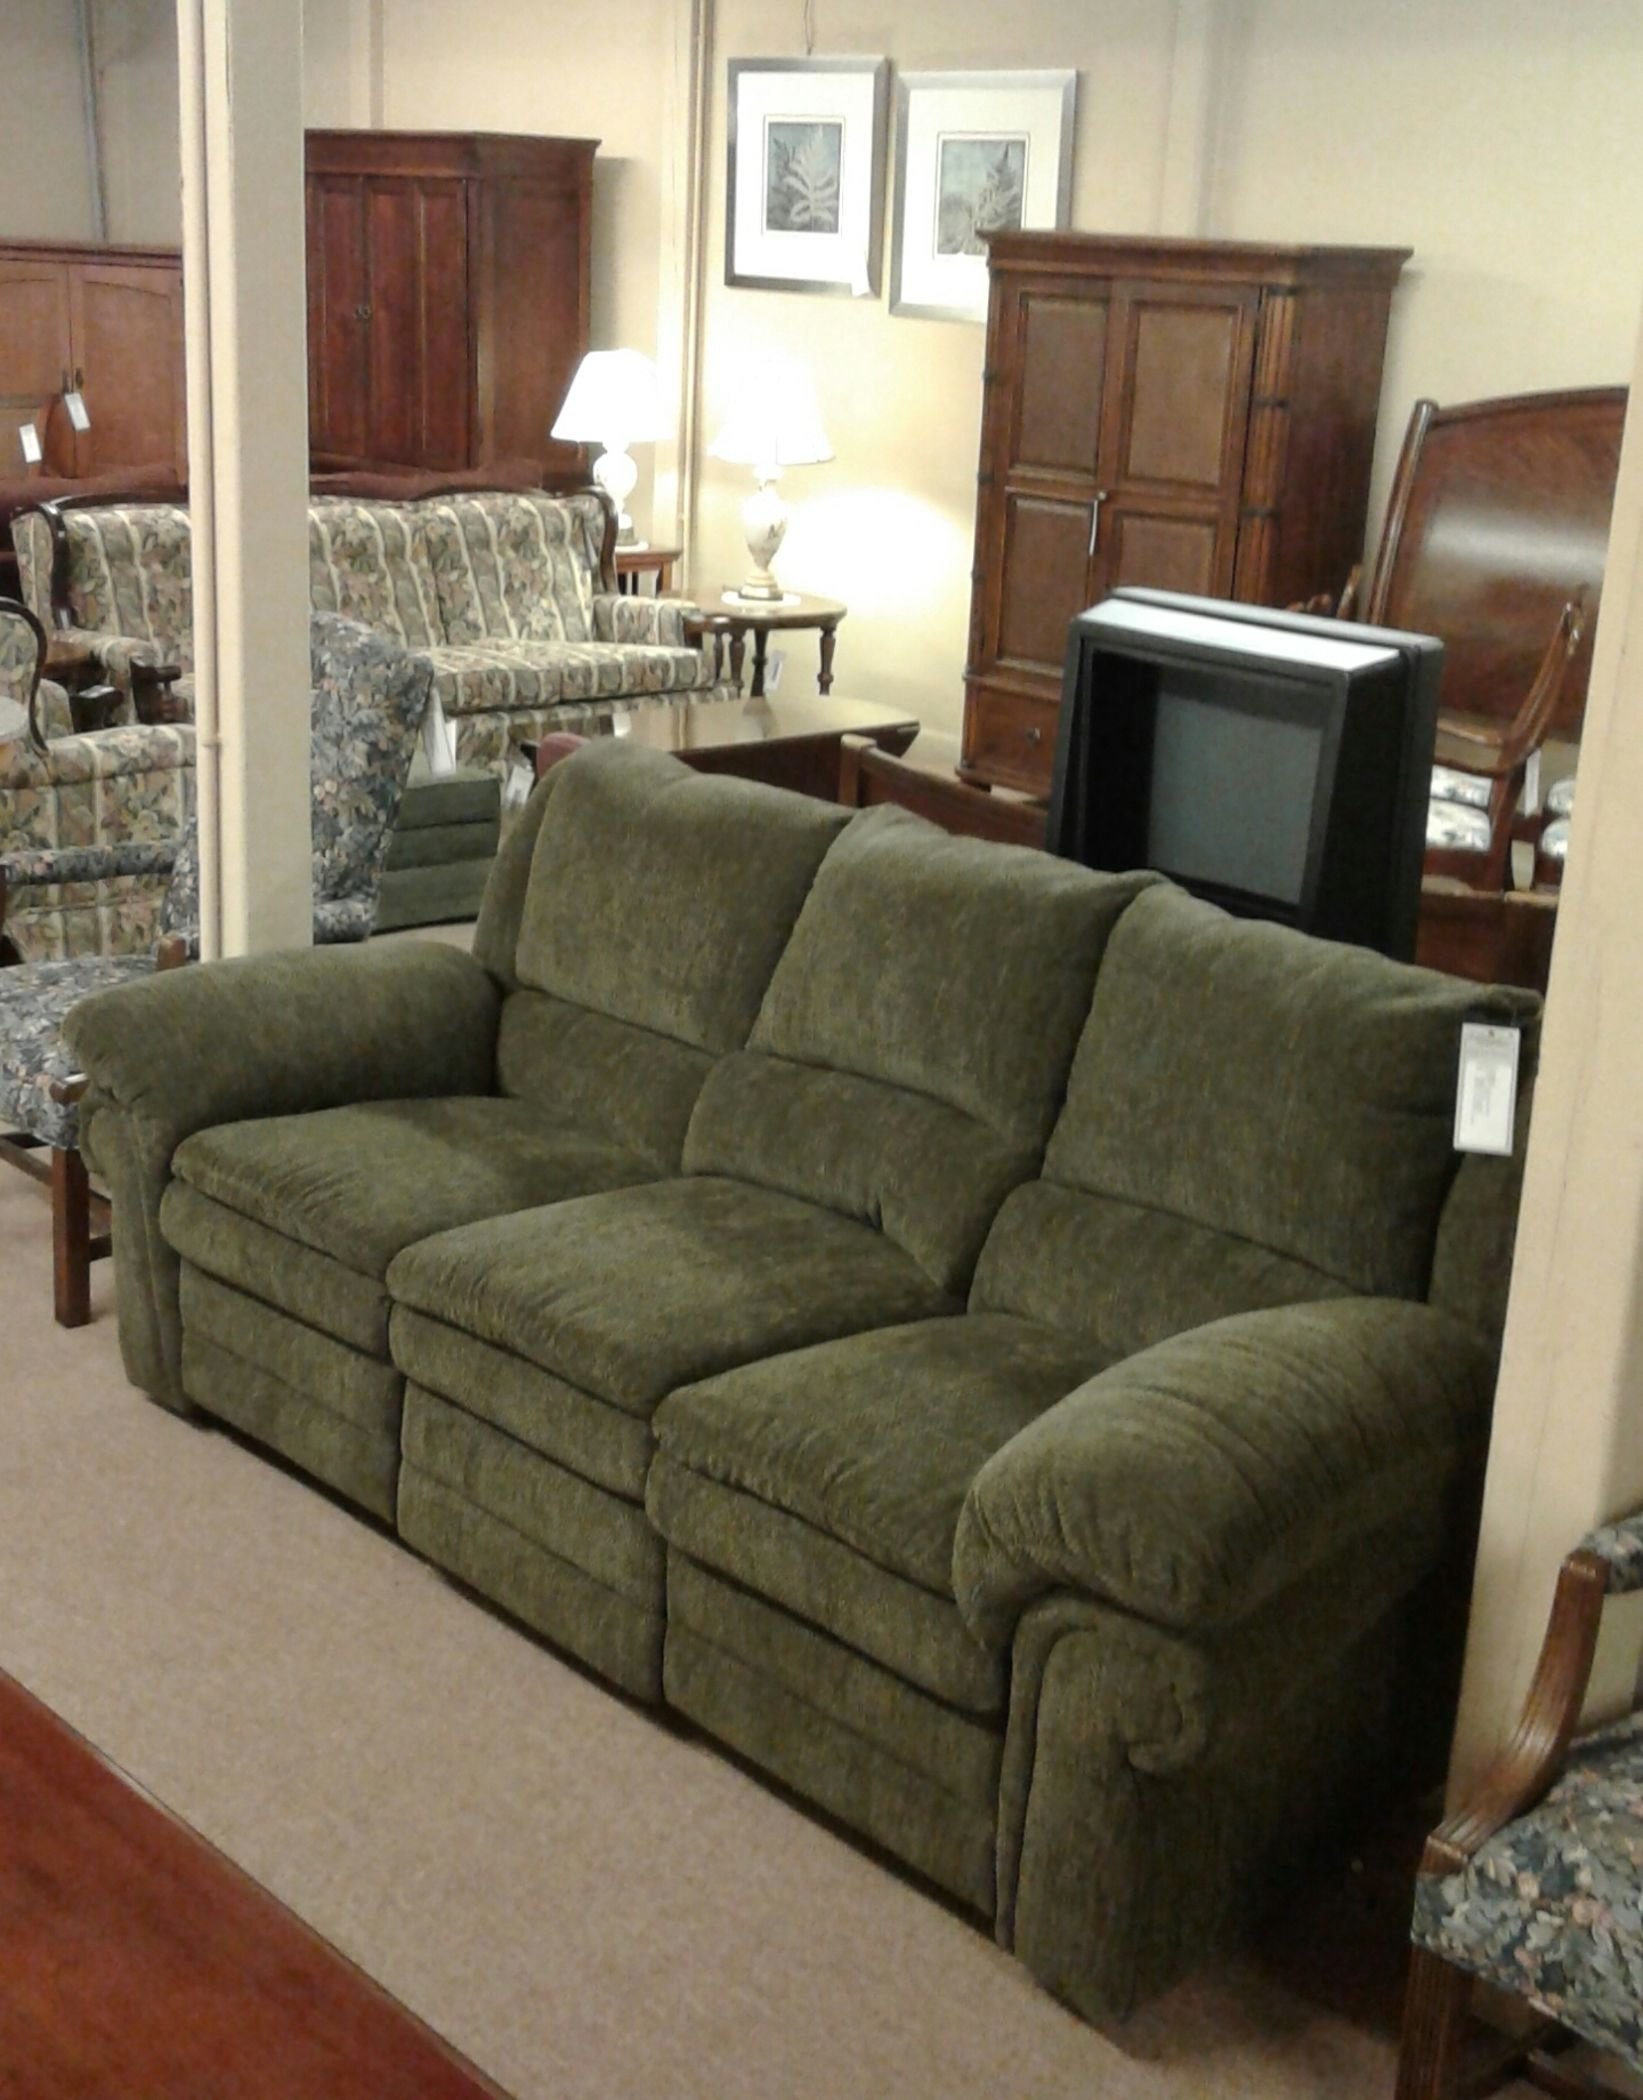 Lane Green Reclining Sofa   Delmarva Furniture Consignment In Green Sectional Sofas (View 10 of 15)